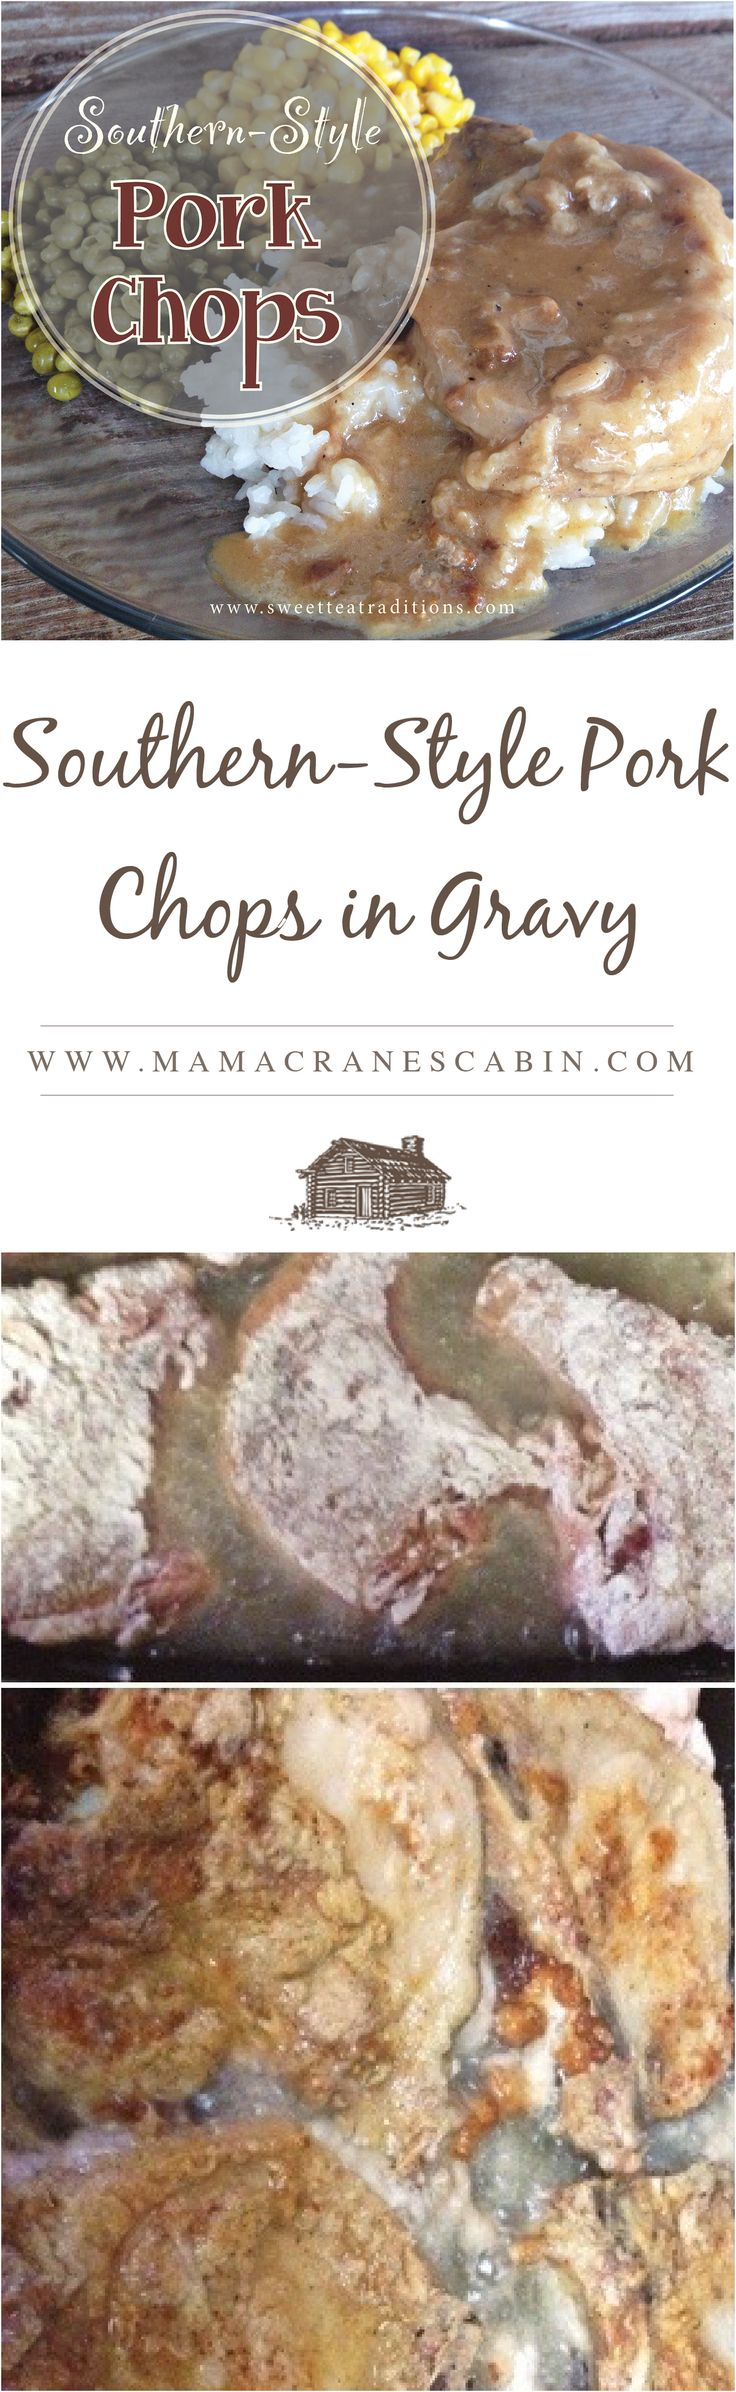 Southern-style pork chops smothered in gravy…YUM! The gravy is just as good as the pork chop!!! But, are these chops baked or fried? Well, actually, both! The chops are dredged in flou…